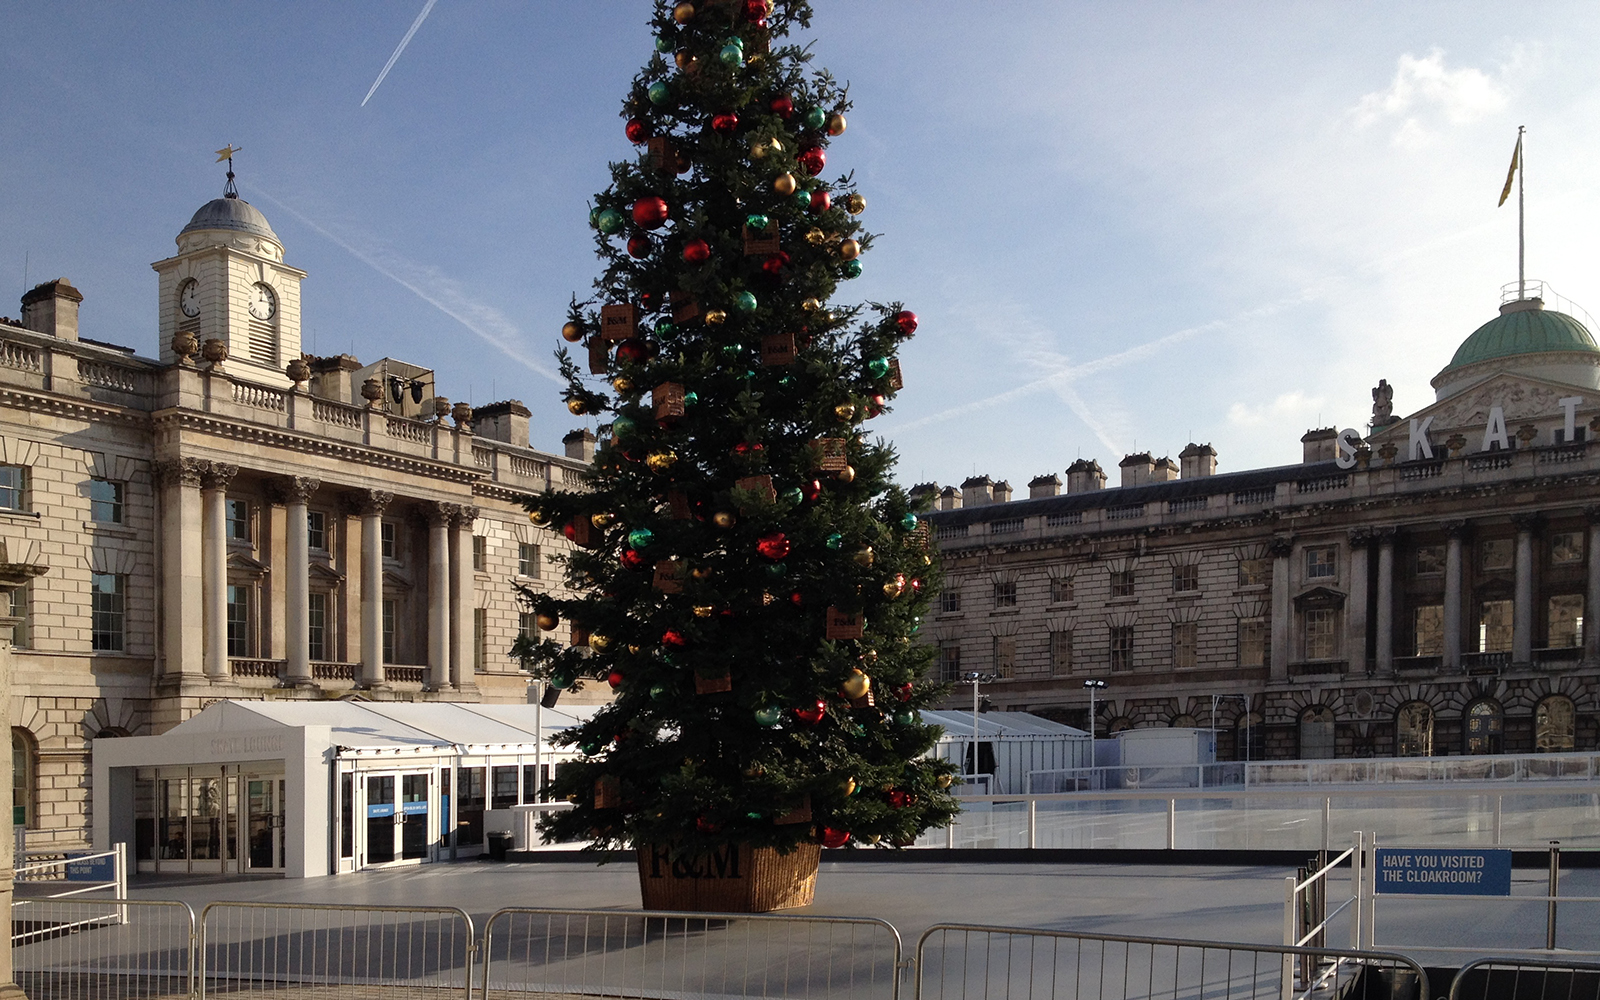 Somerset House 11 November 2016 1